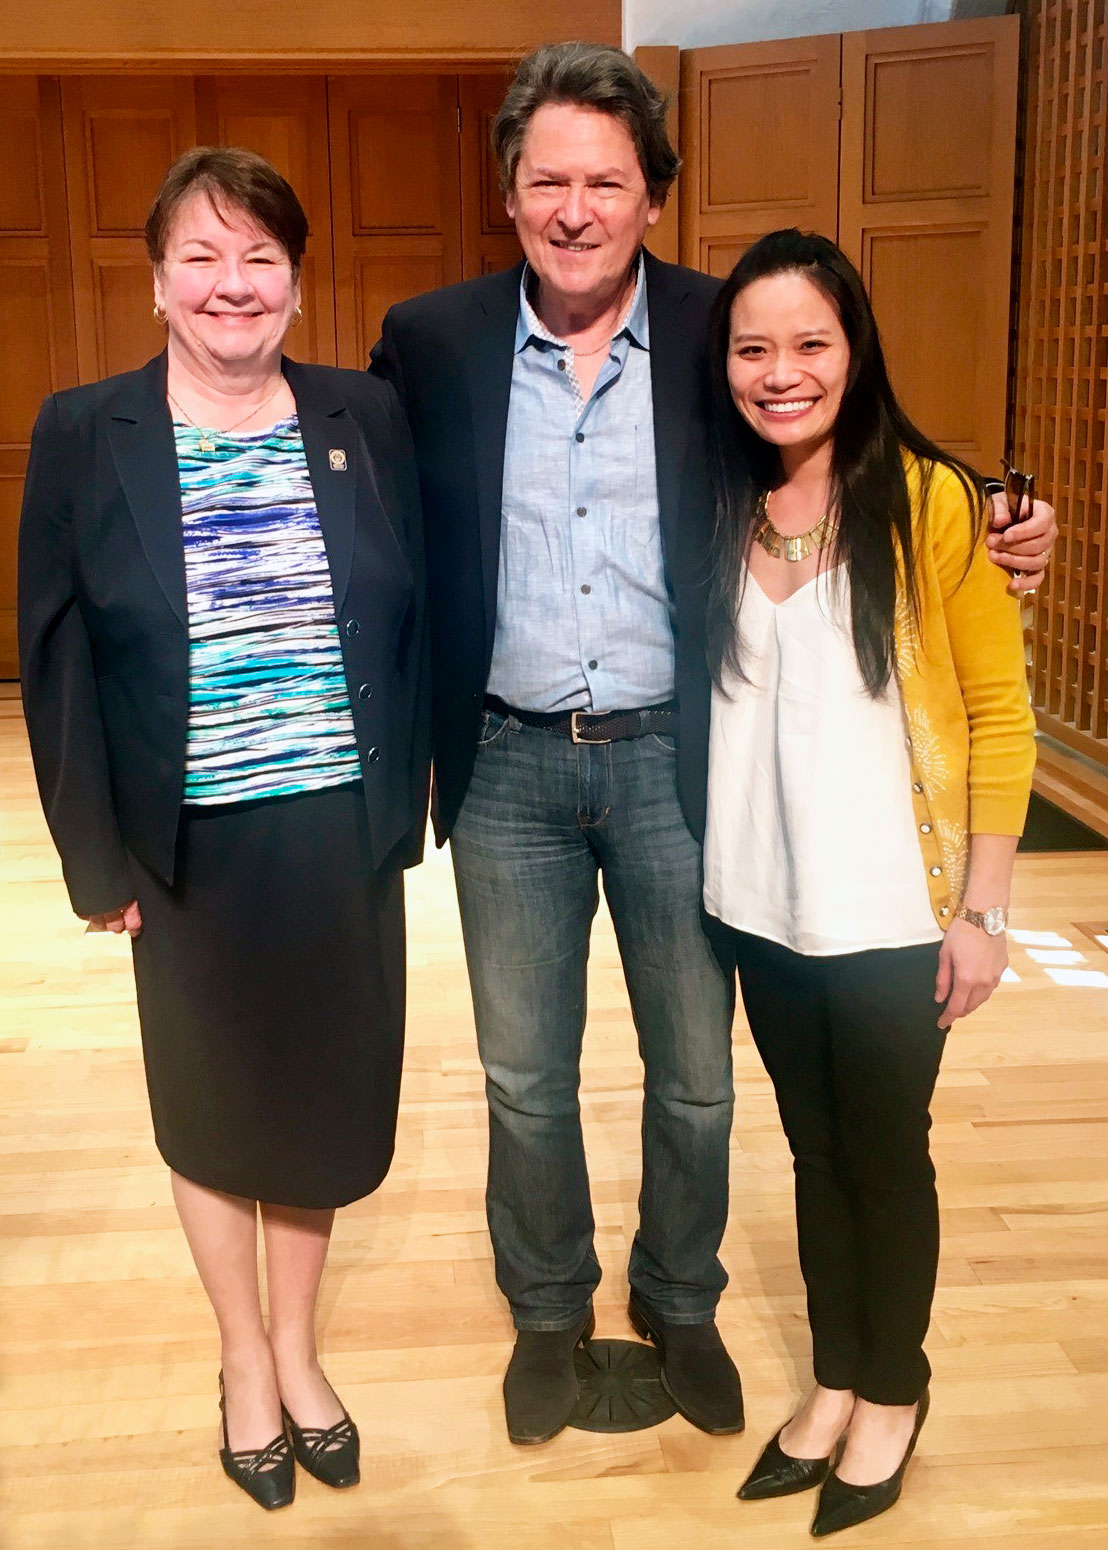 Dr. Peter Simon with Elaine Rusk and Dr. Ruby Wang, from the Pasadena Conservatory of Music